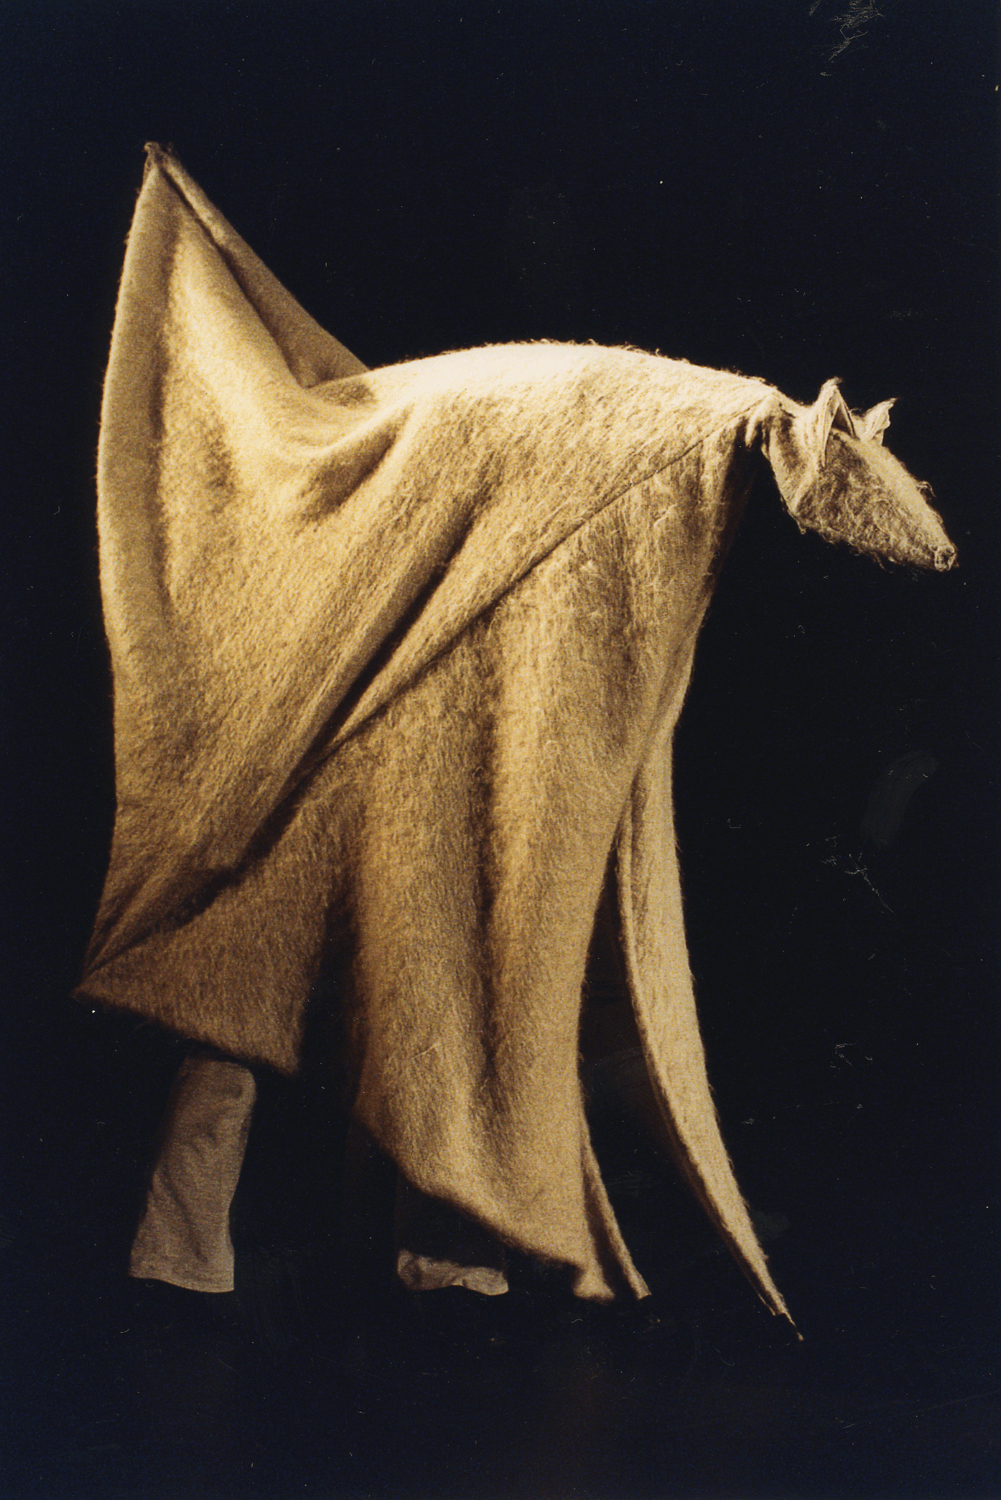 A large wolf shaped puppet is made of rough grey fabric. He is being manipulated by a performer who is entirely inside the fabric, only the bottom of her legs are visible. From the